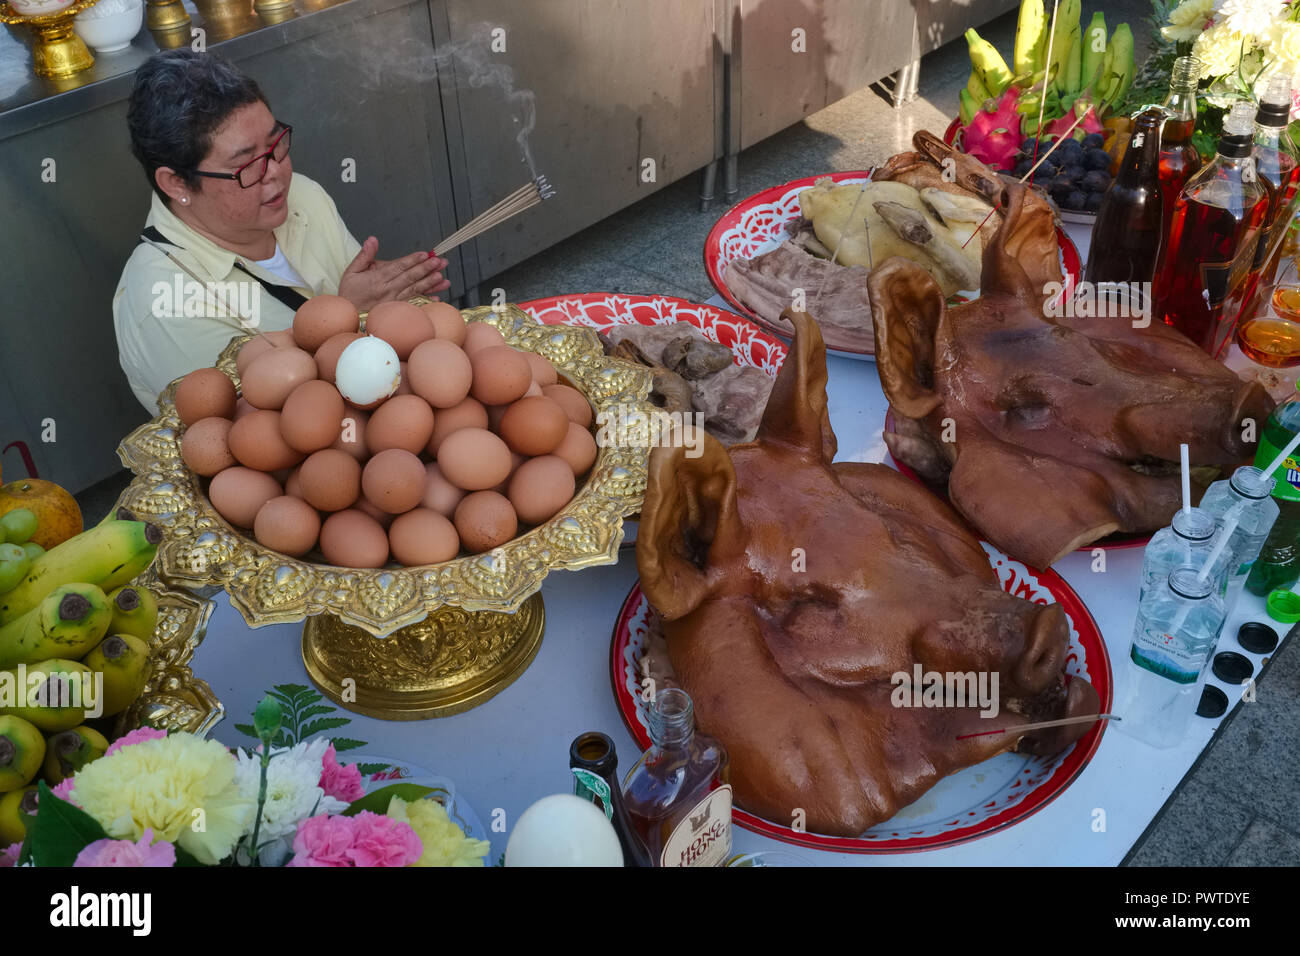 A woman prays at Lak Mueang or City Pillar Shrine in Bangkok, Thailand, where the city's guardian spirit is appeased with boiled eggs and pigs' heads - Stock Image